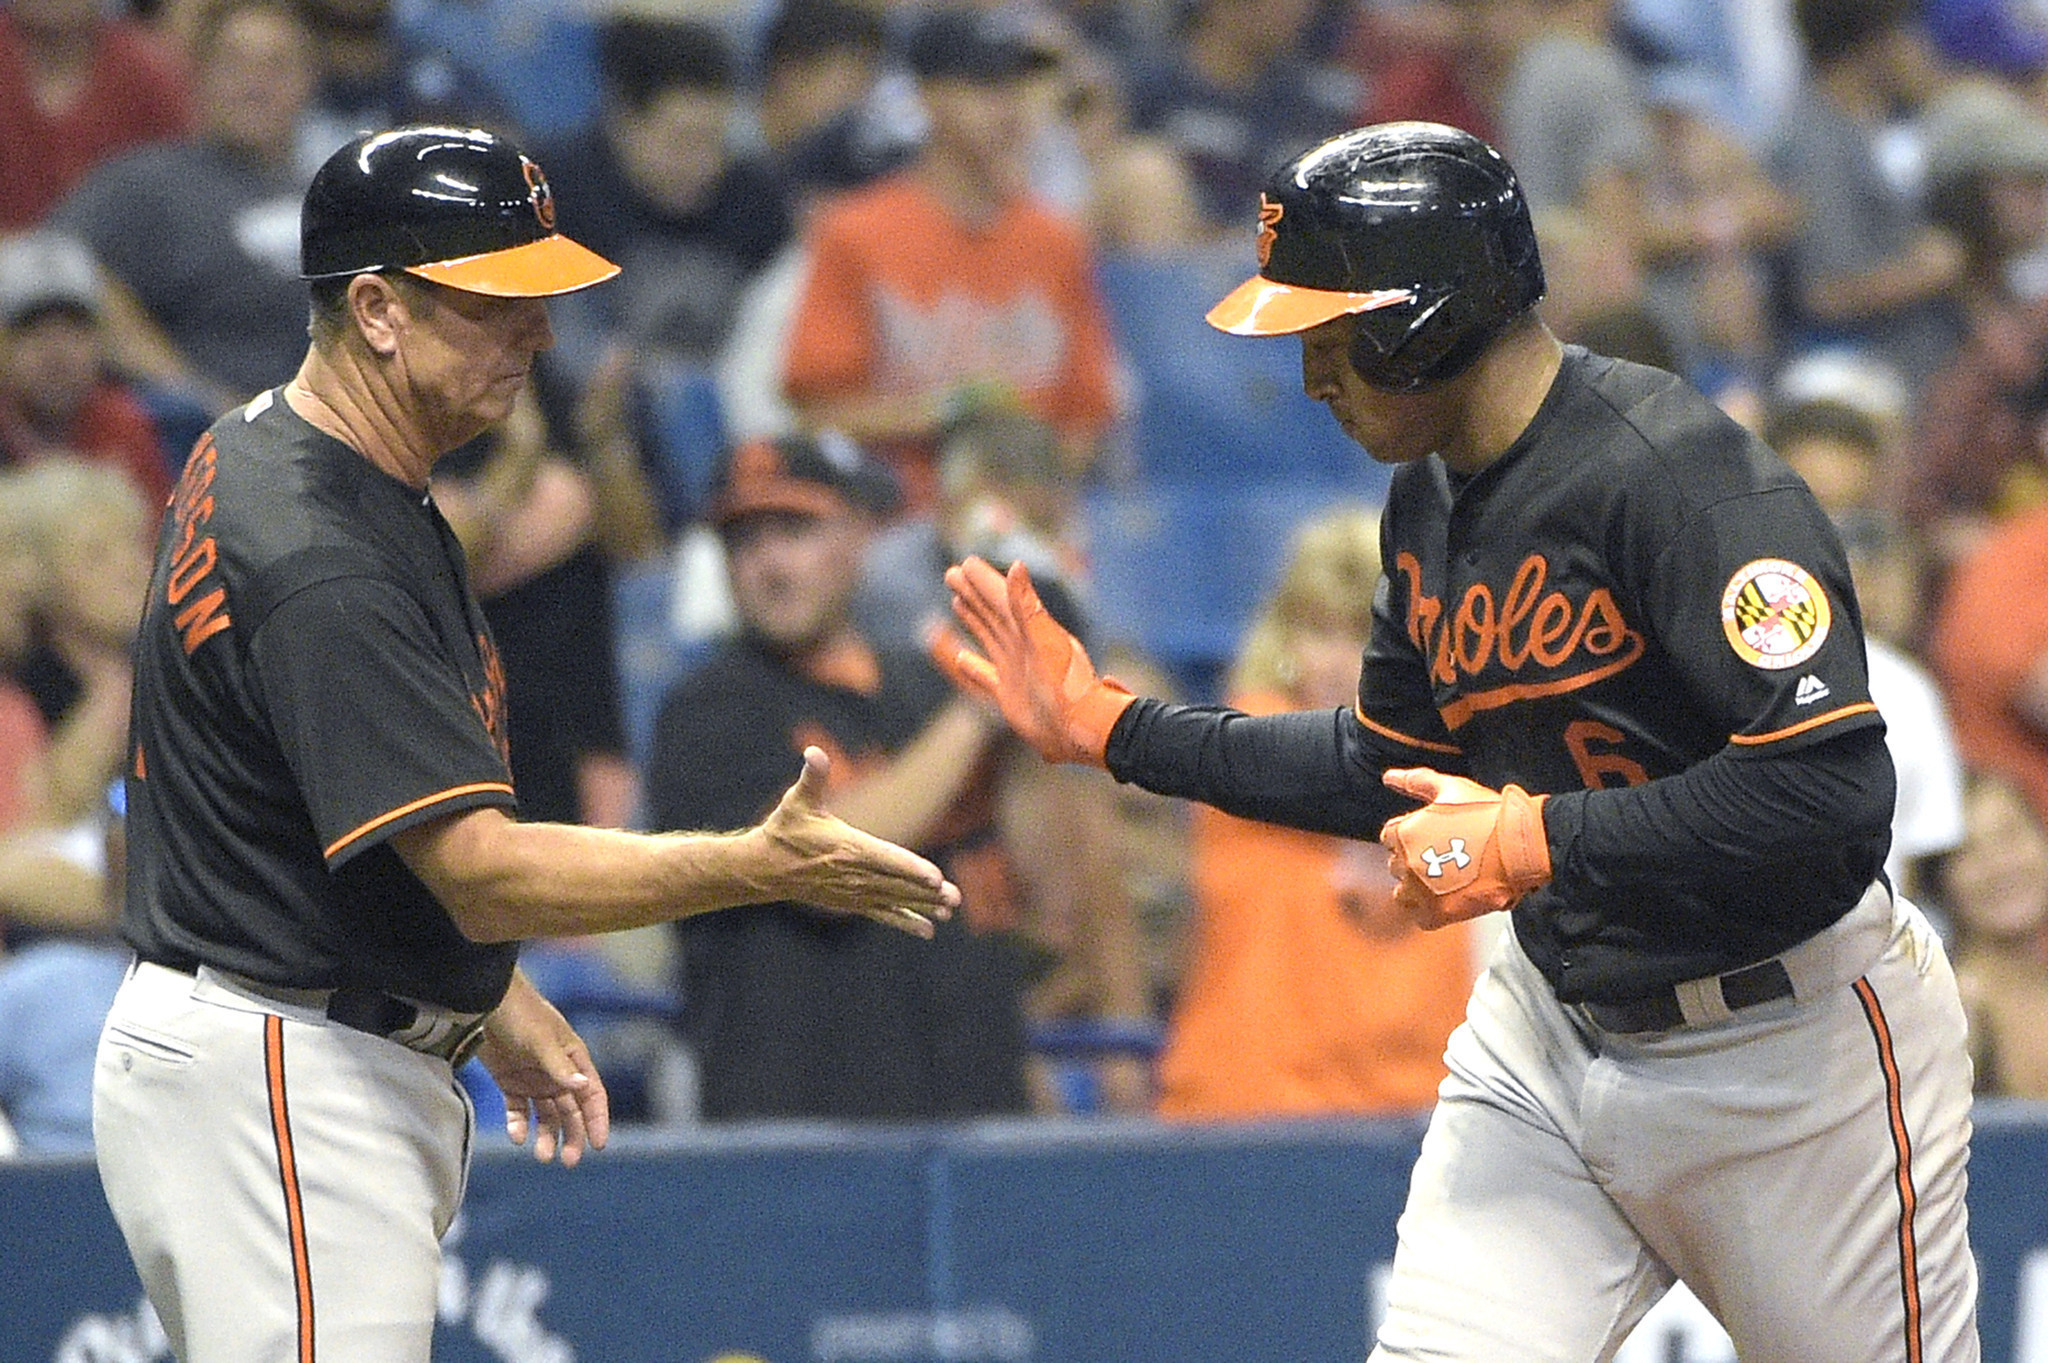 Bal-orioles-on-deck-what-to-watch-sunday-vs-indians-20160723